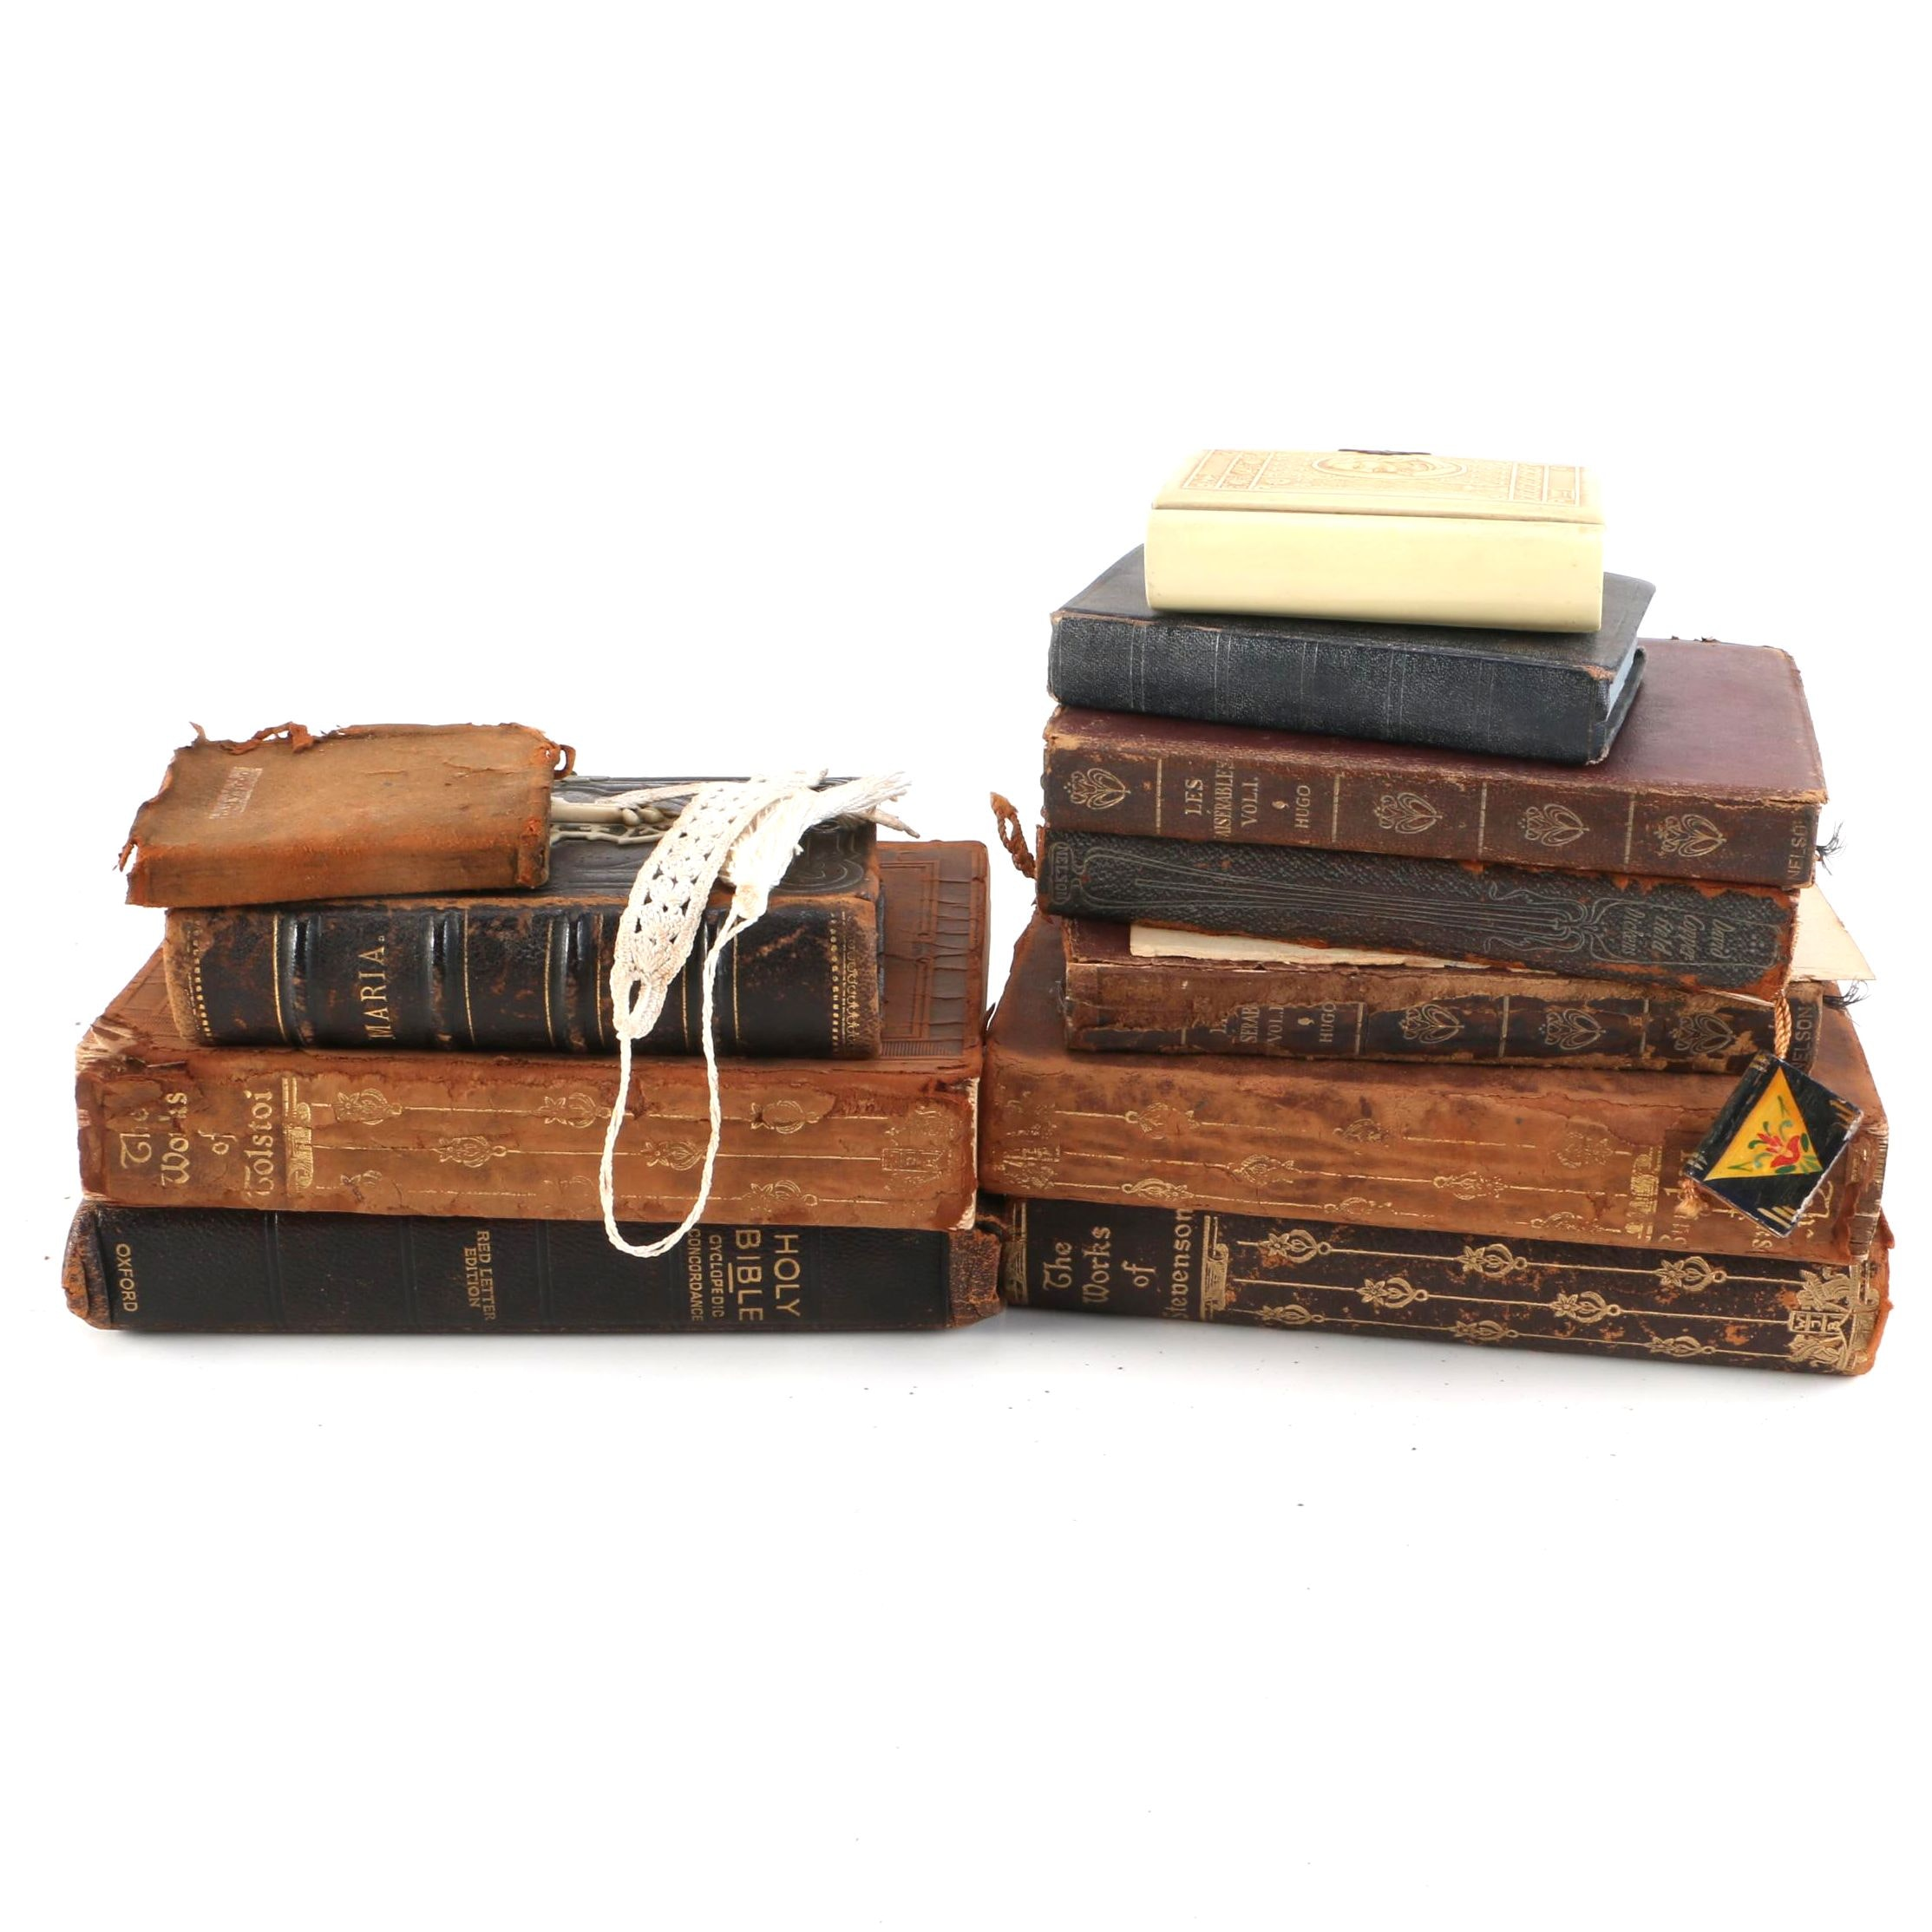 """Antique Books Including Christian Prayer Books and """"Les Miserables"""""""